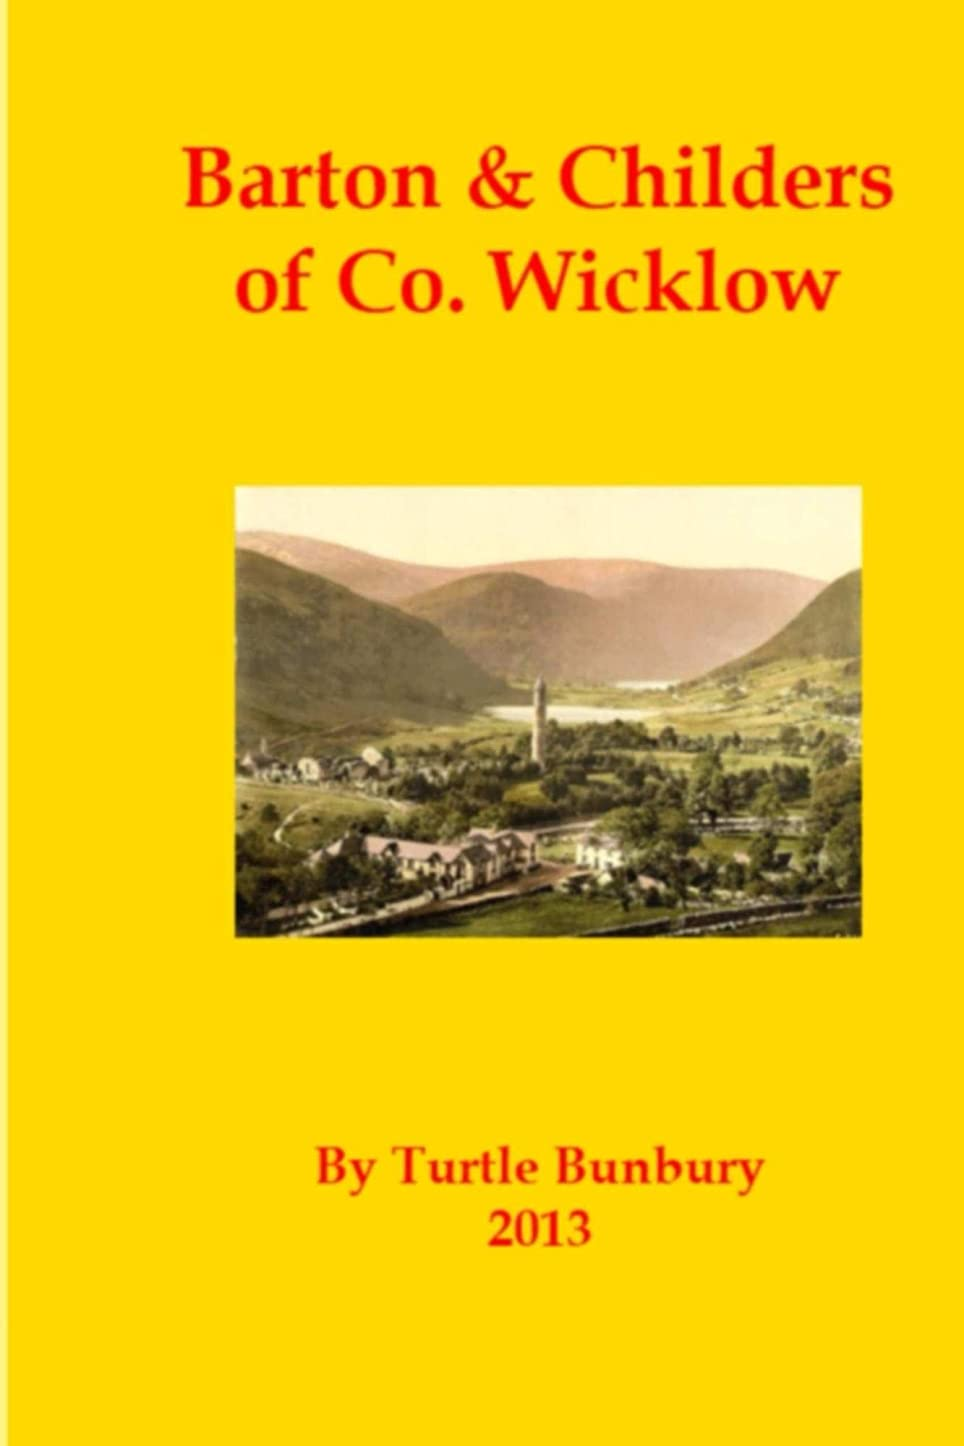 放棄された文字パンチBarton & Childers of Co. Wicklow (The Gentry & Aristocracy of Co.Wicklow Book 2) (English Edition)